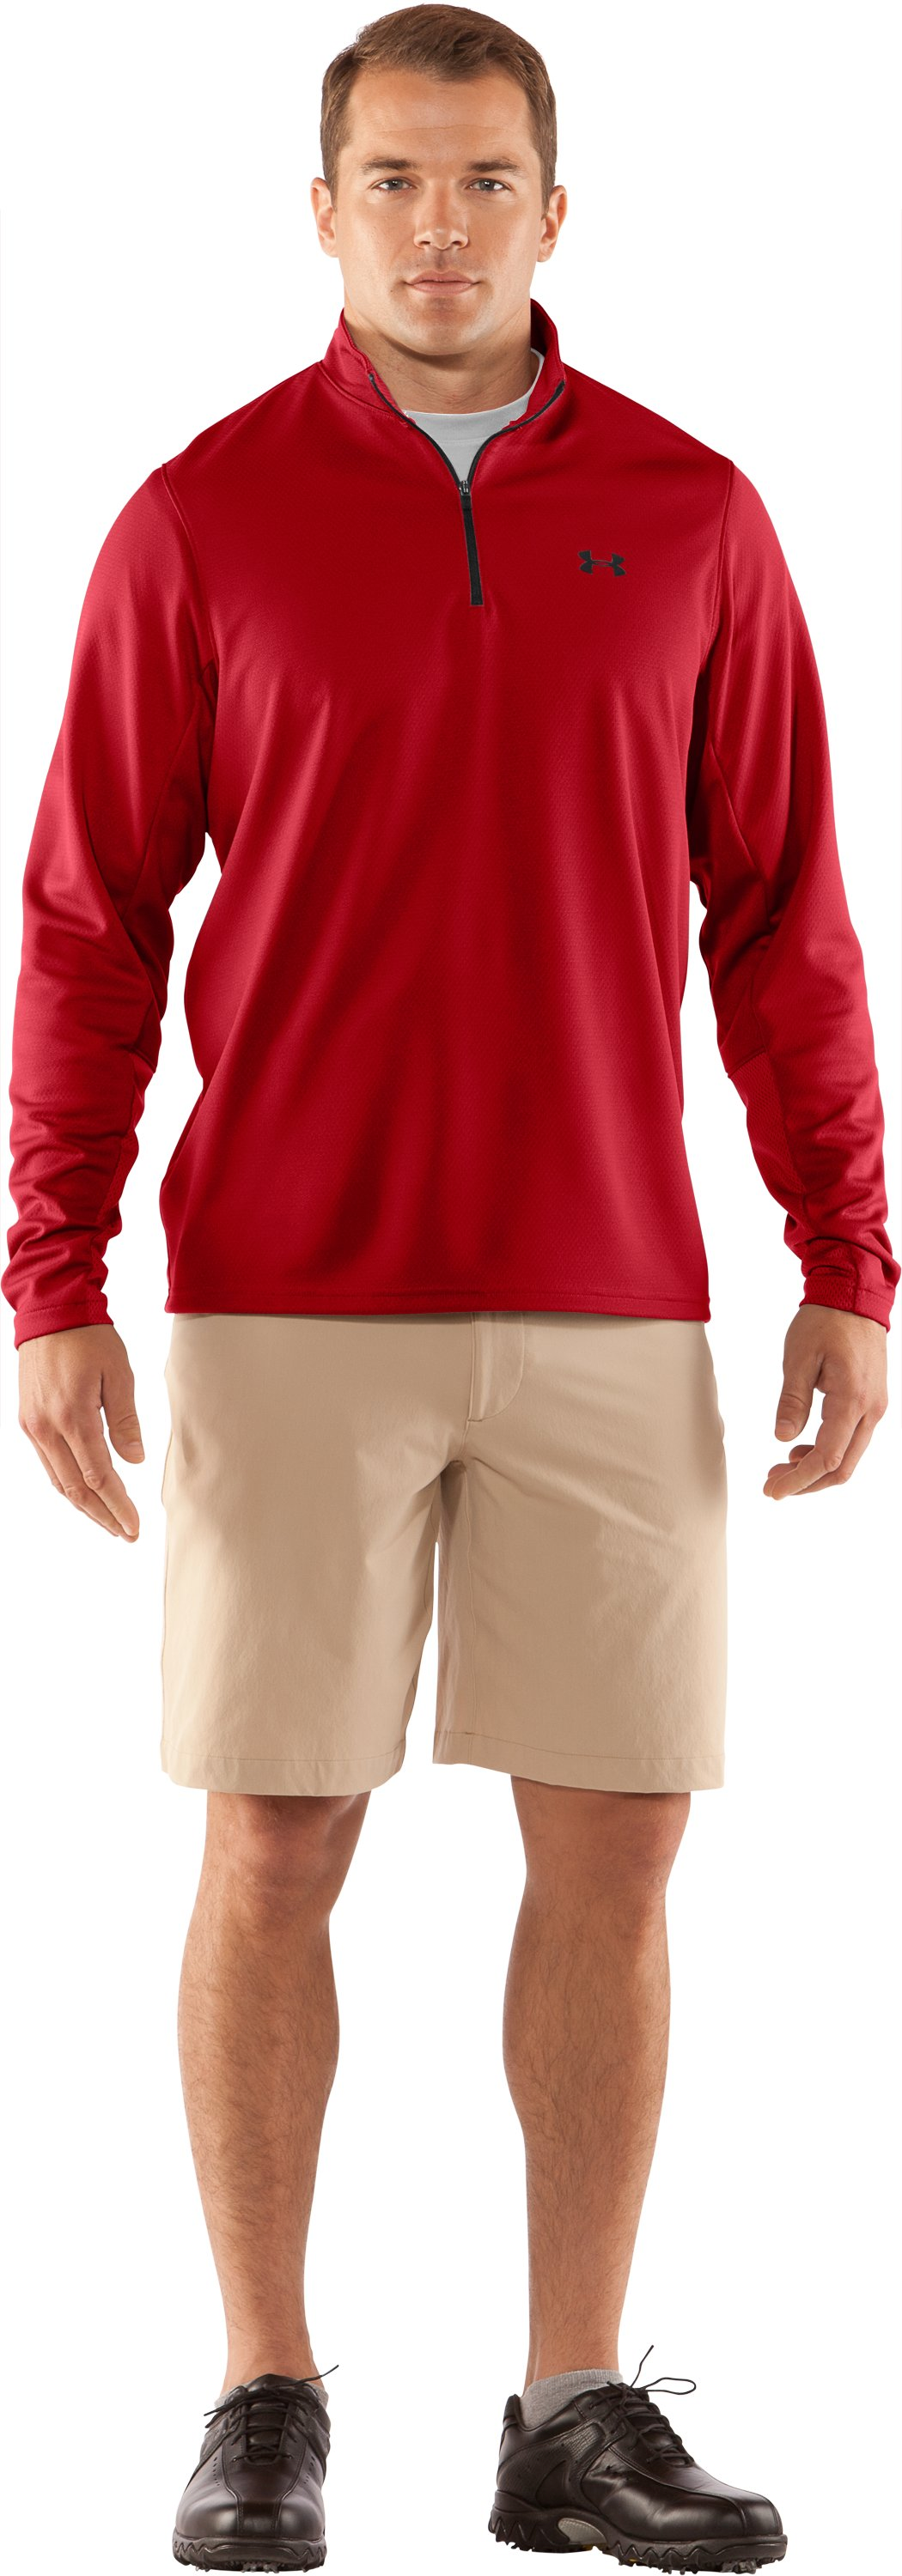 Men's AllSeasonGear® ¼ Zip Golf Jacket, Red, Front